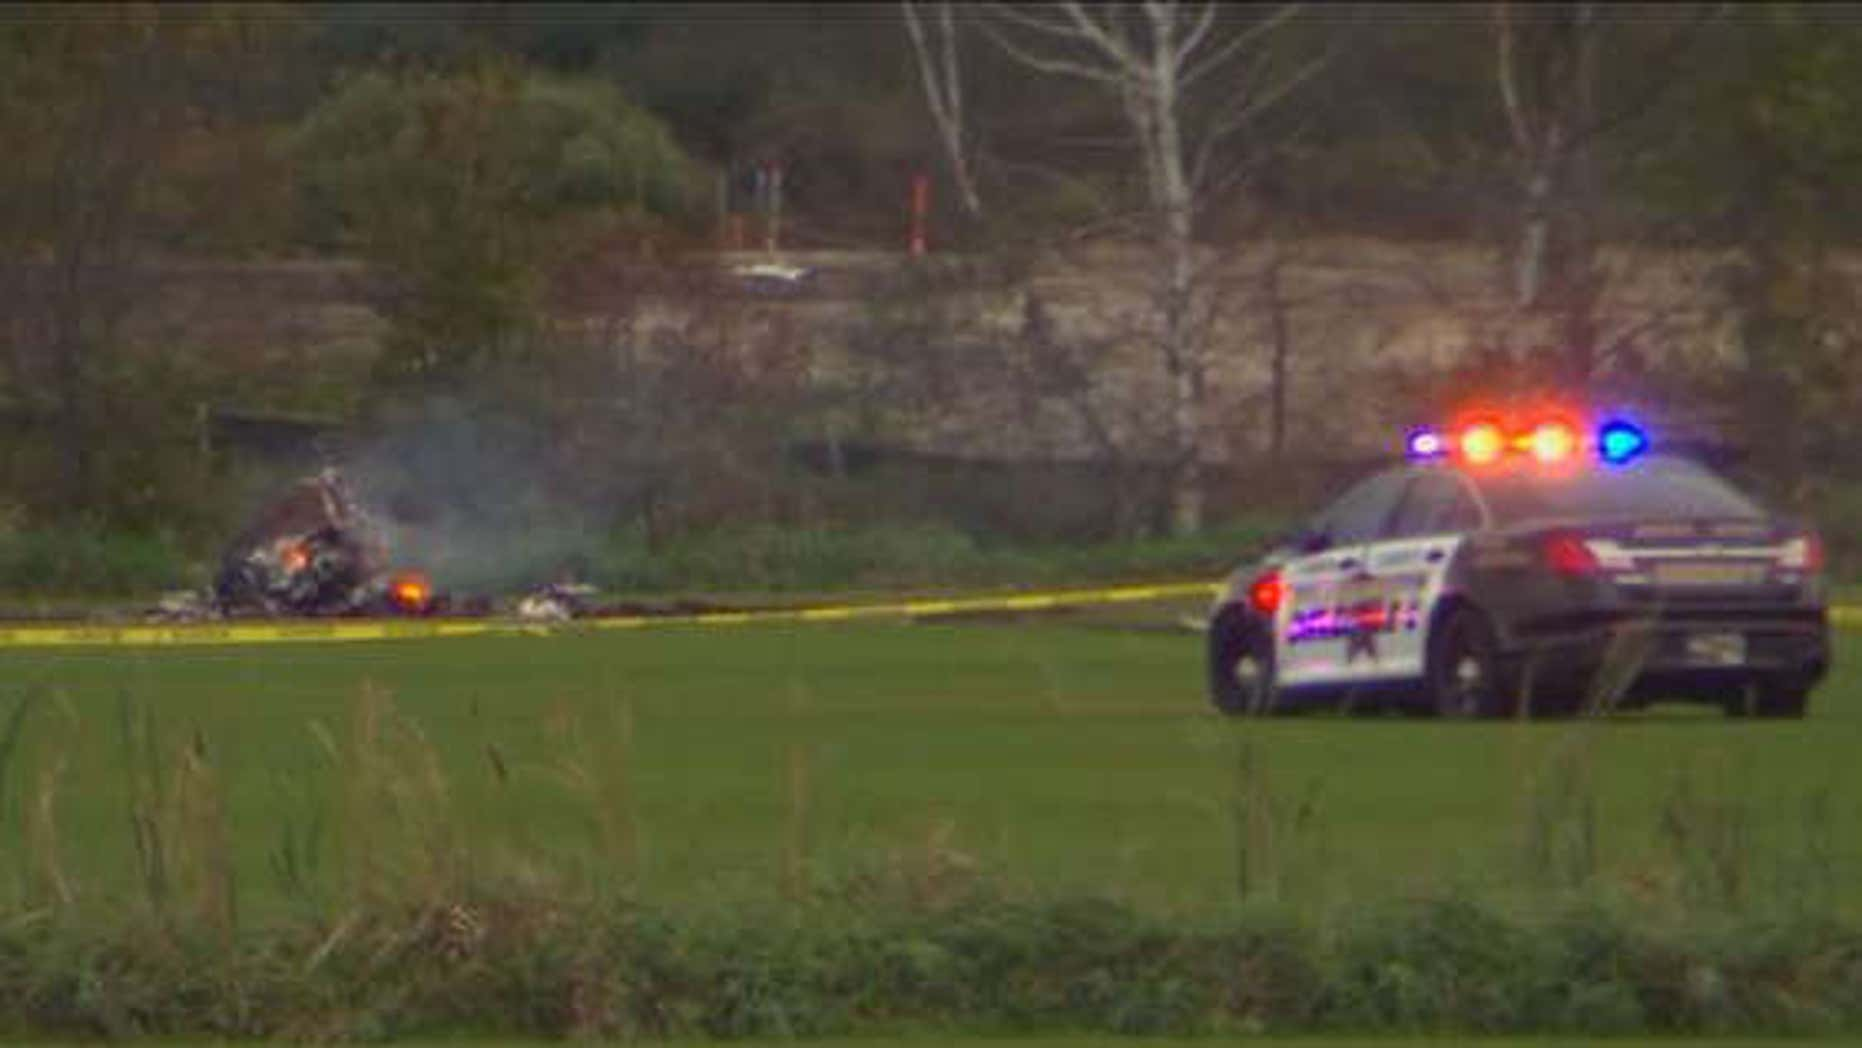 Helicopter crash in Lino Lakes, Min.